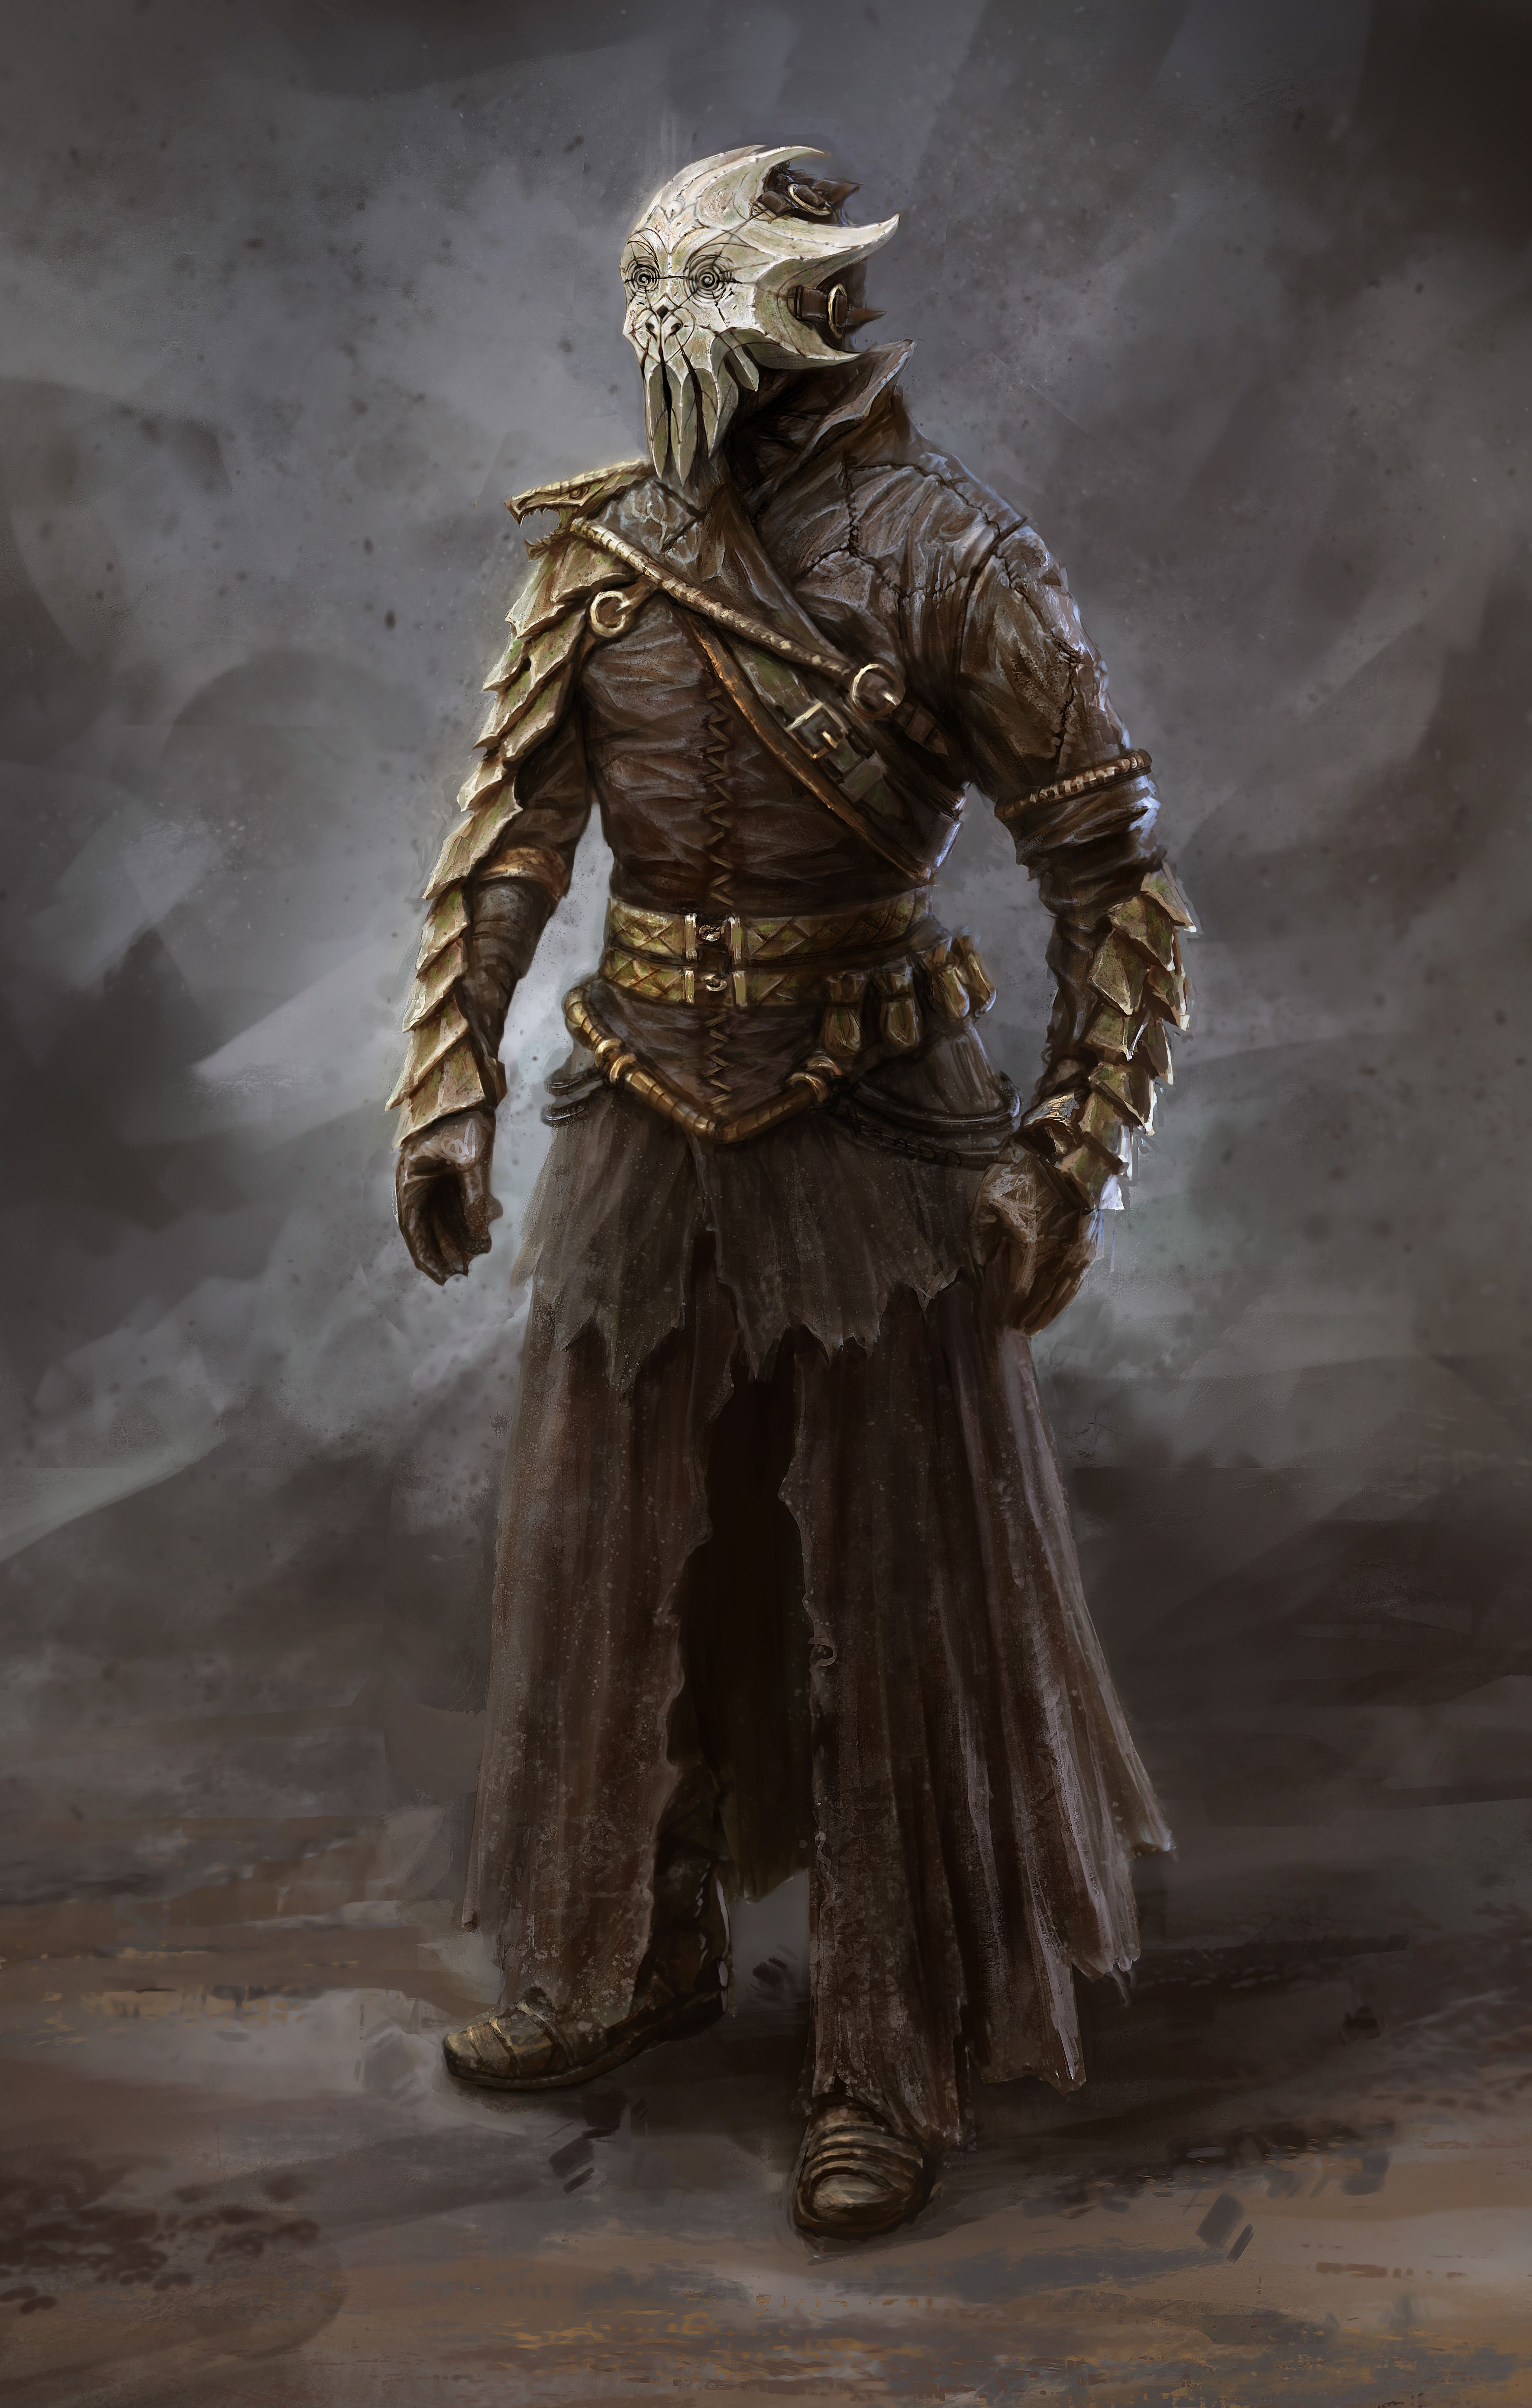 Concept From Bethesda S Skyrim Always Thought The Cultists Had Cool Outfits Deathspacegame Skyrim Art Skyrim Concept Art Elder Scrolls Art